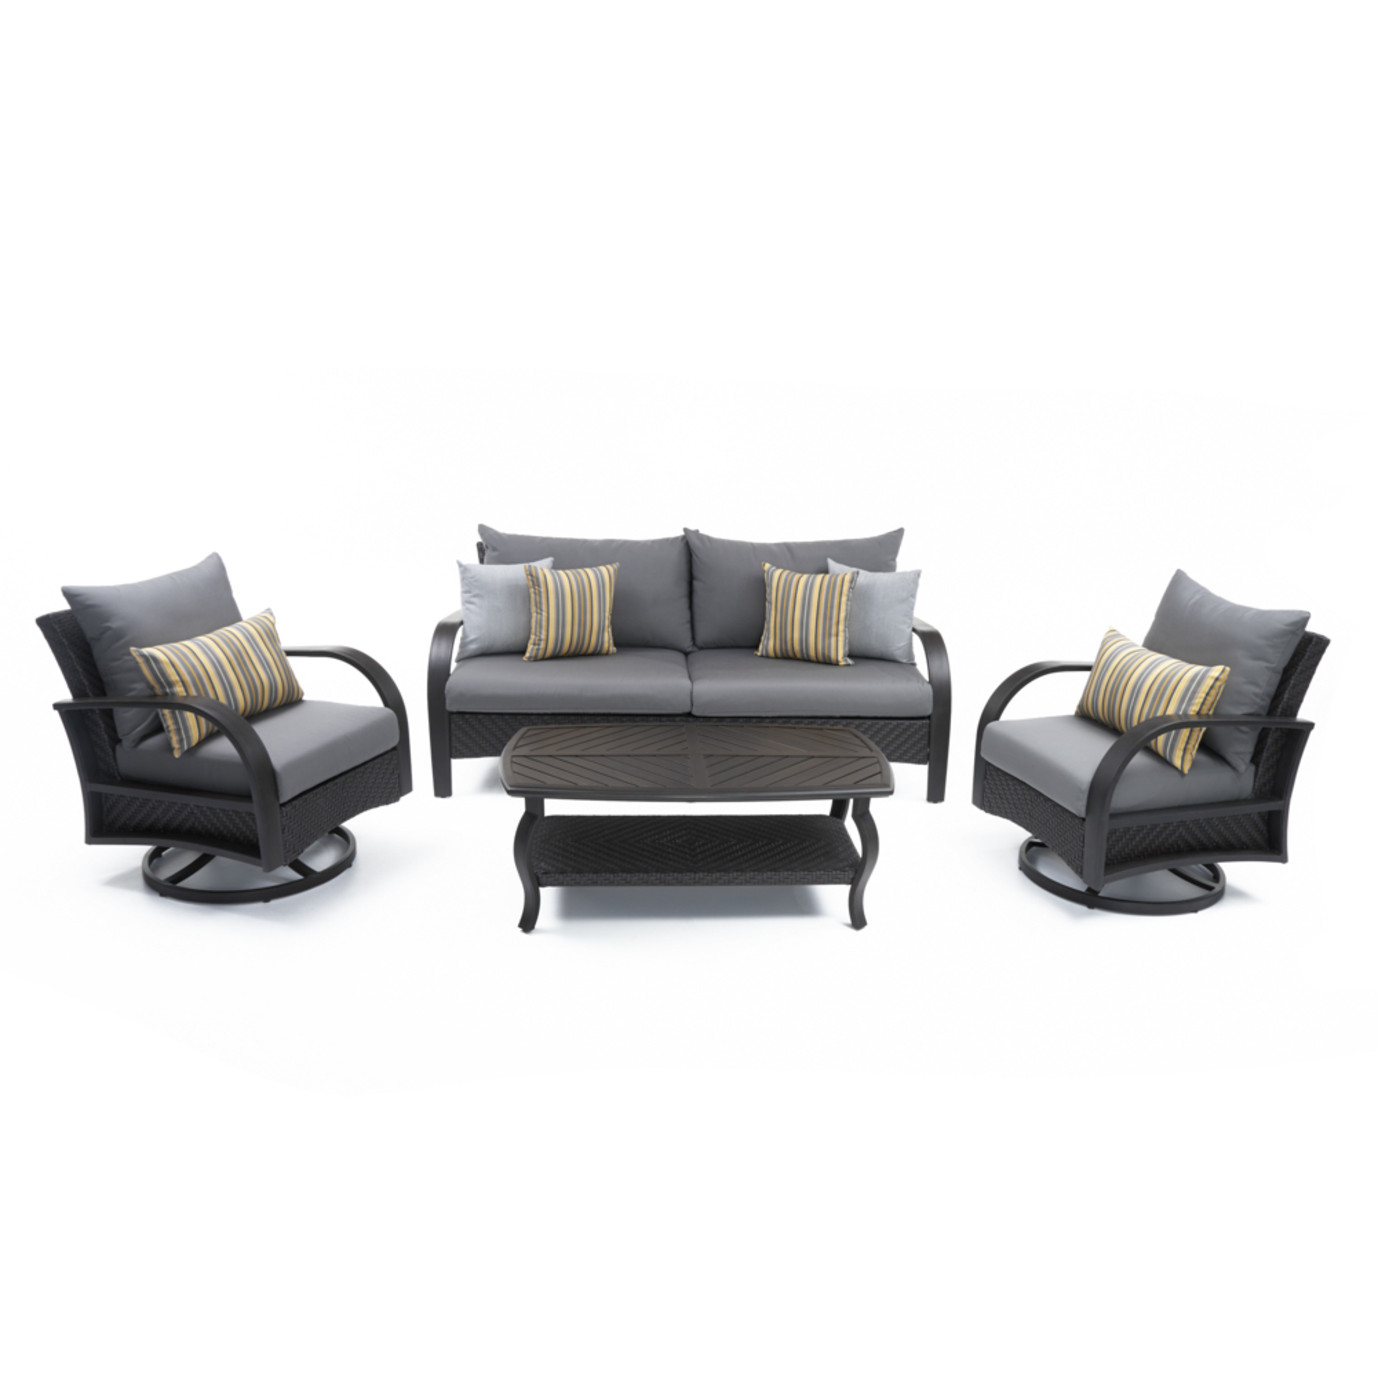 Barcelo™ 4 Piece Motion Club & Sofa Set - Charcoal Gray